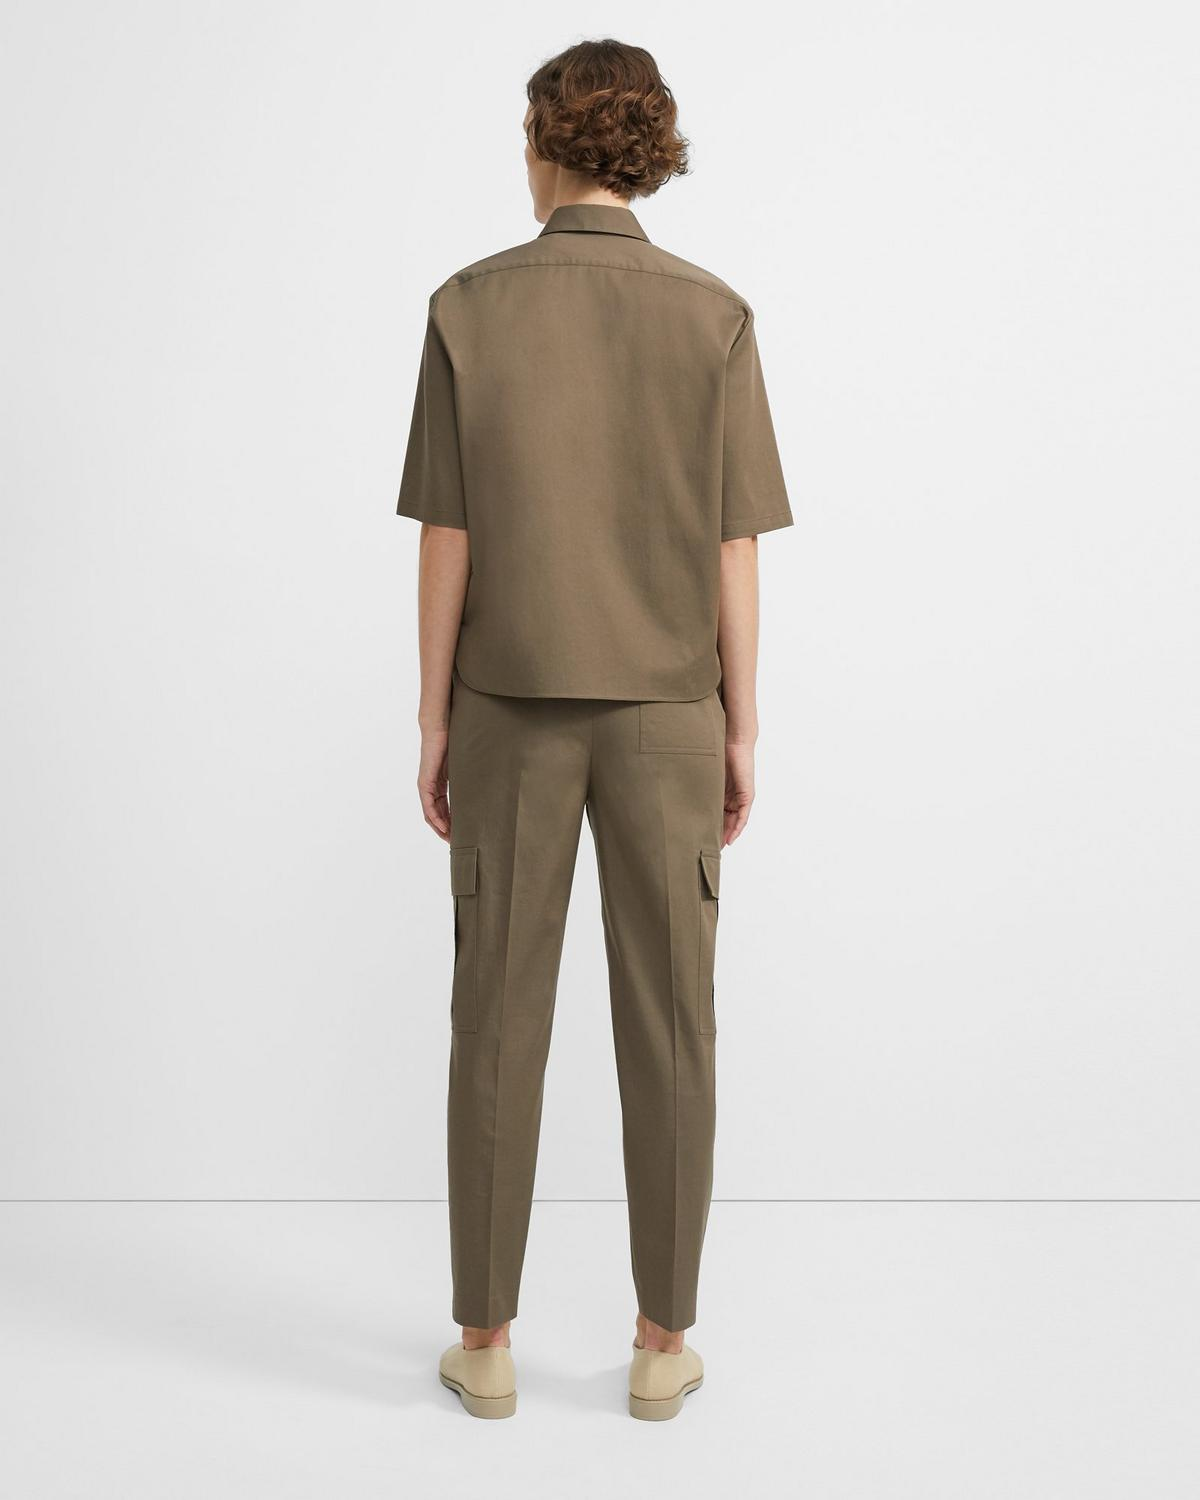 Stretch Chino Short-Sleeve Classic Shirt 0 - click to view larger image